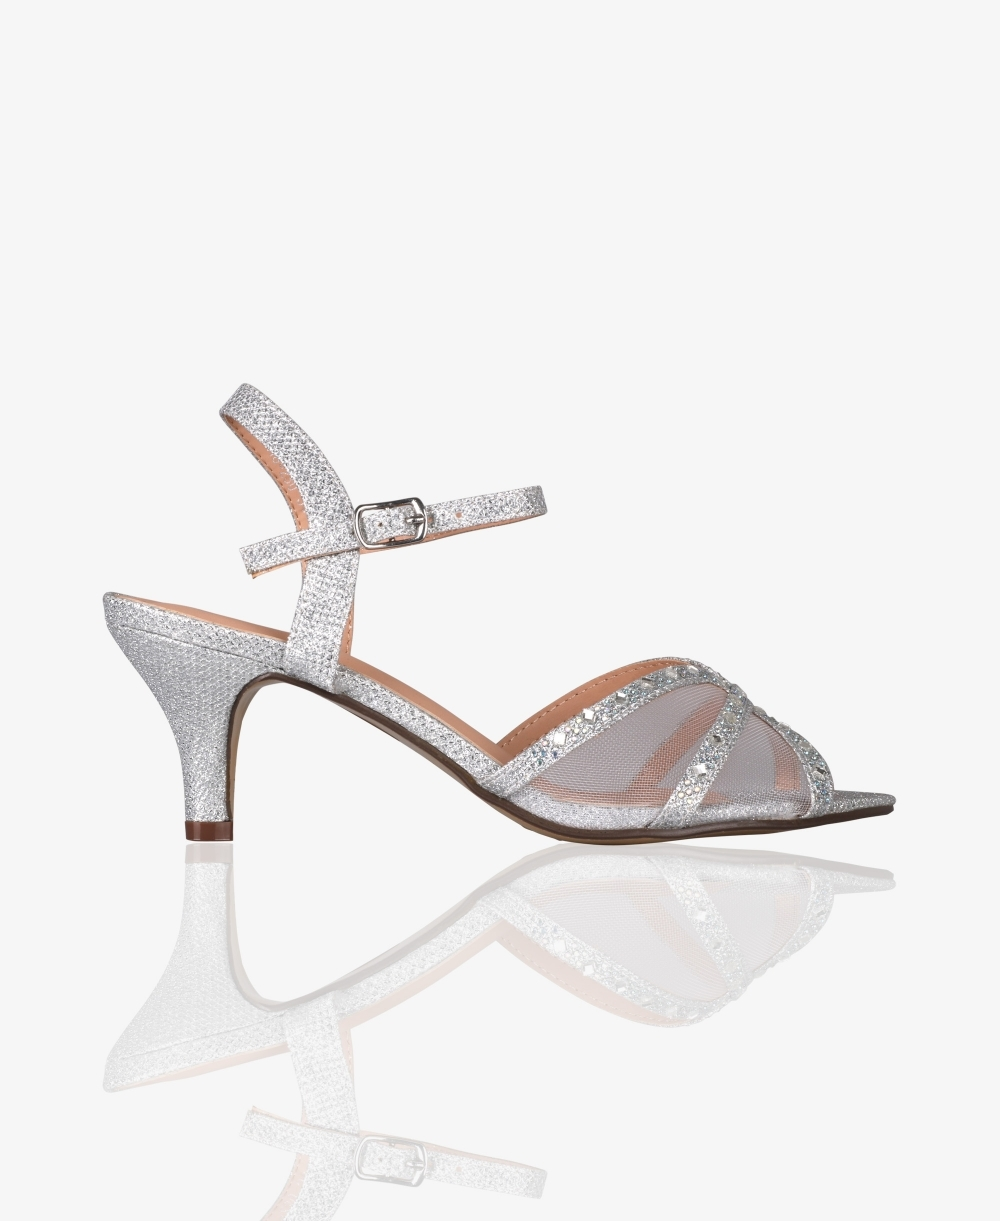 fb4c0d48208e5 Heeled Sandals | Mesh & Glitter Kitten Heel Sandals | Krisp